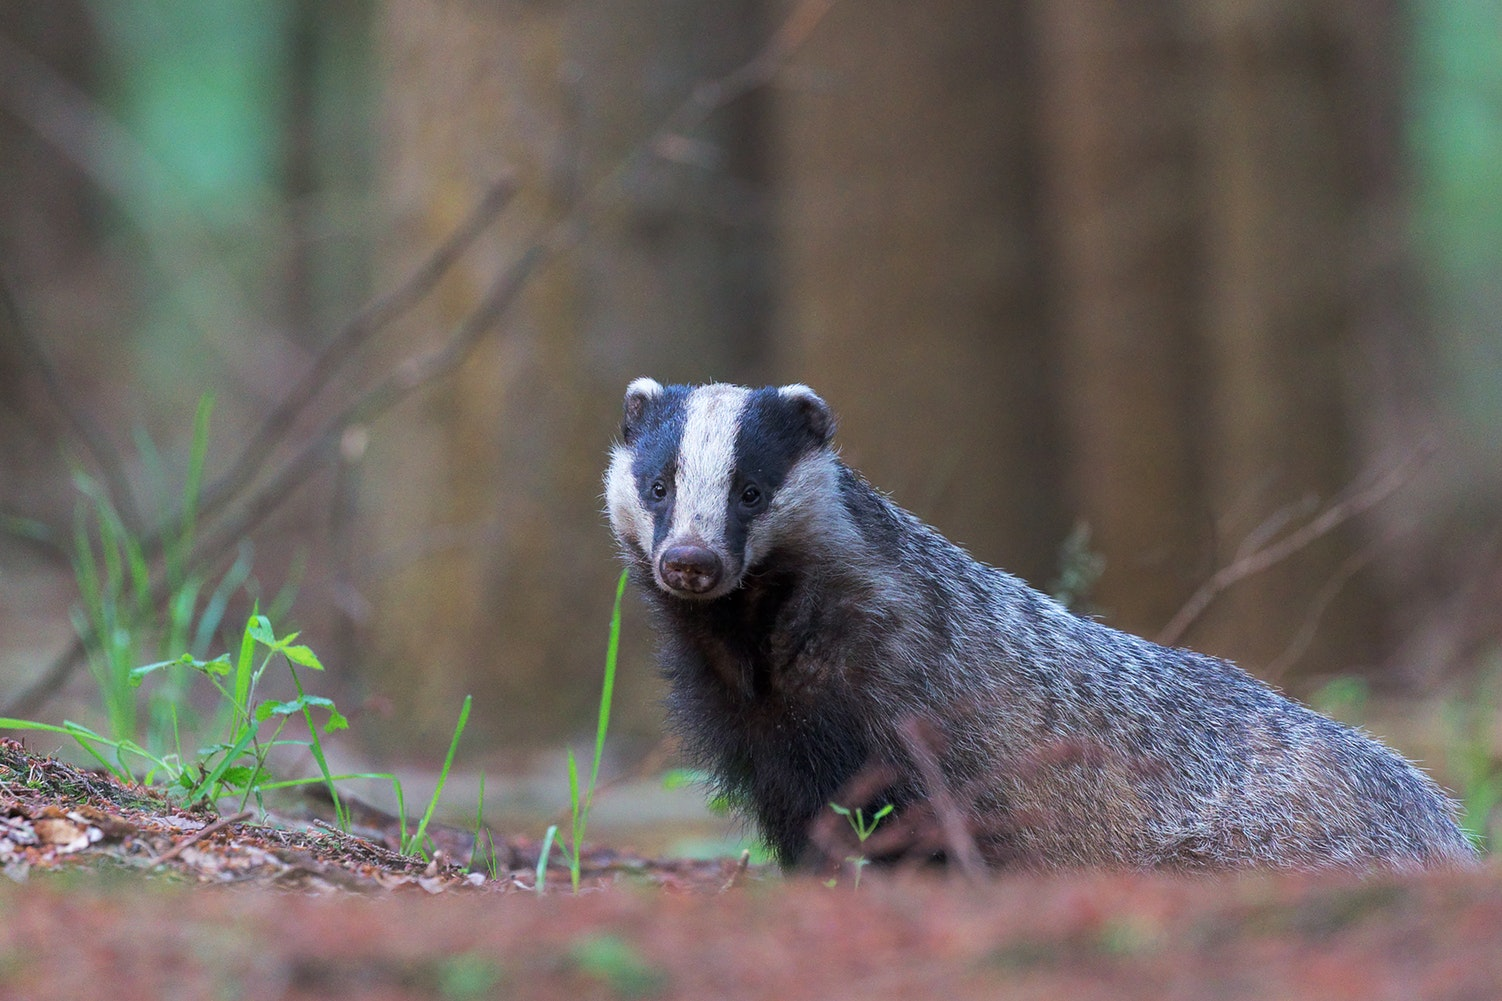 A European badger in a wood looking at the camera